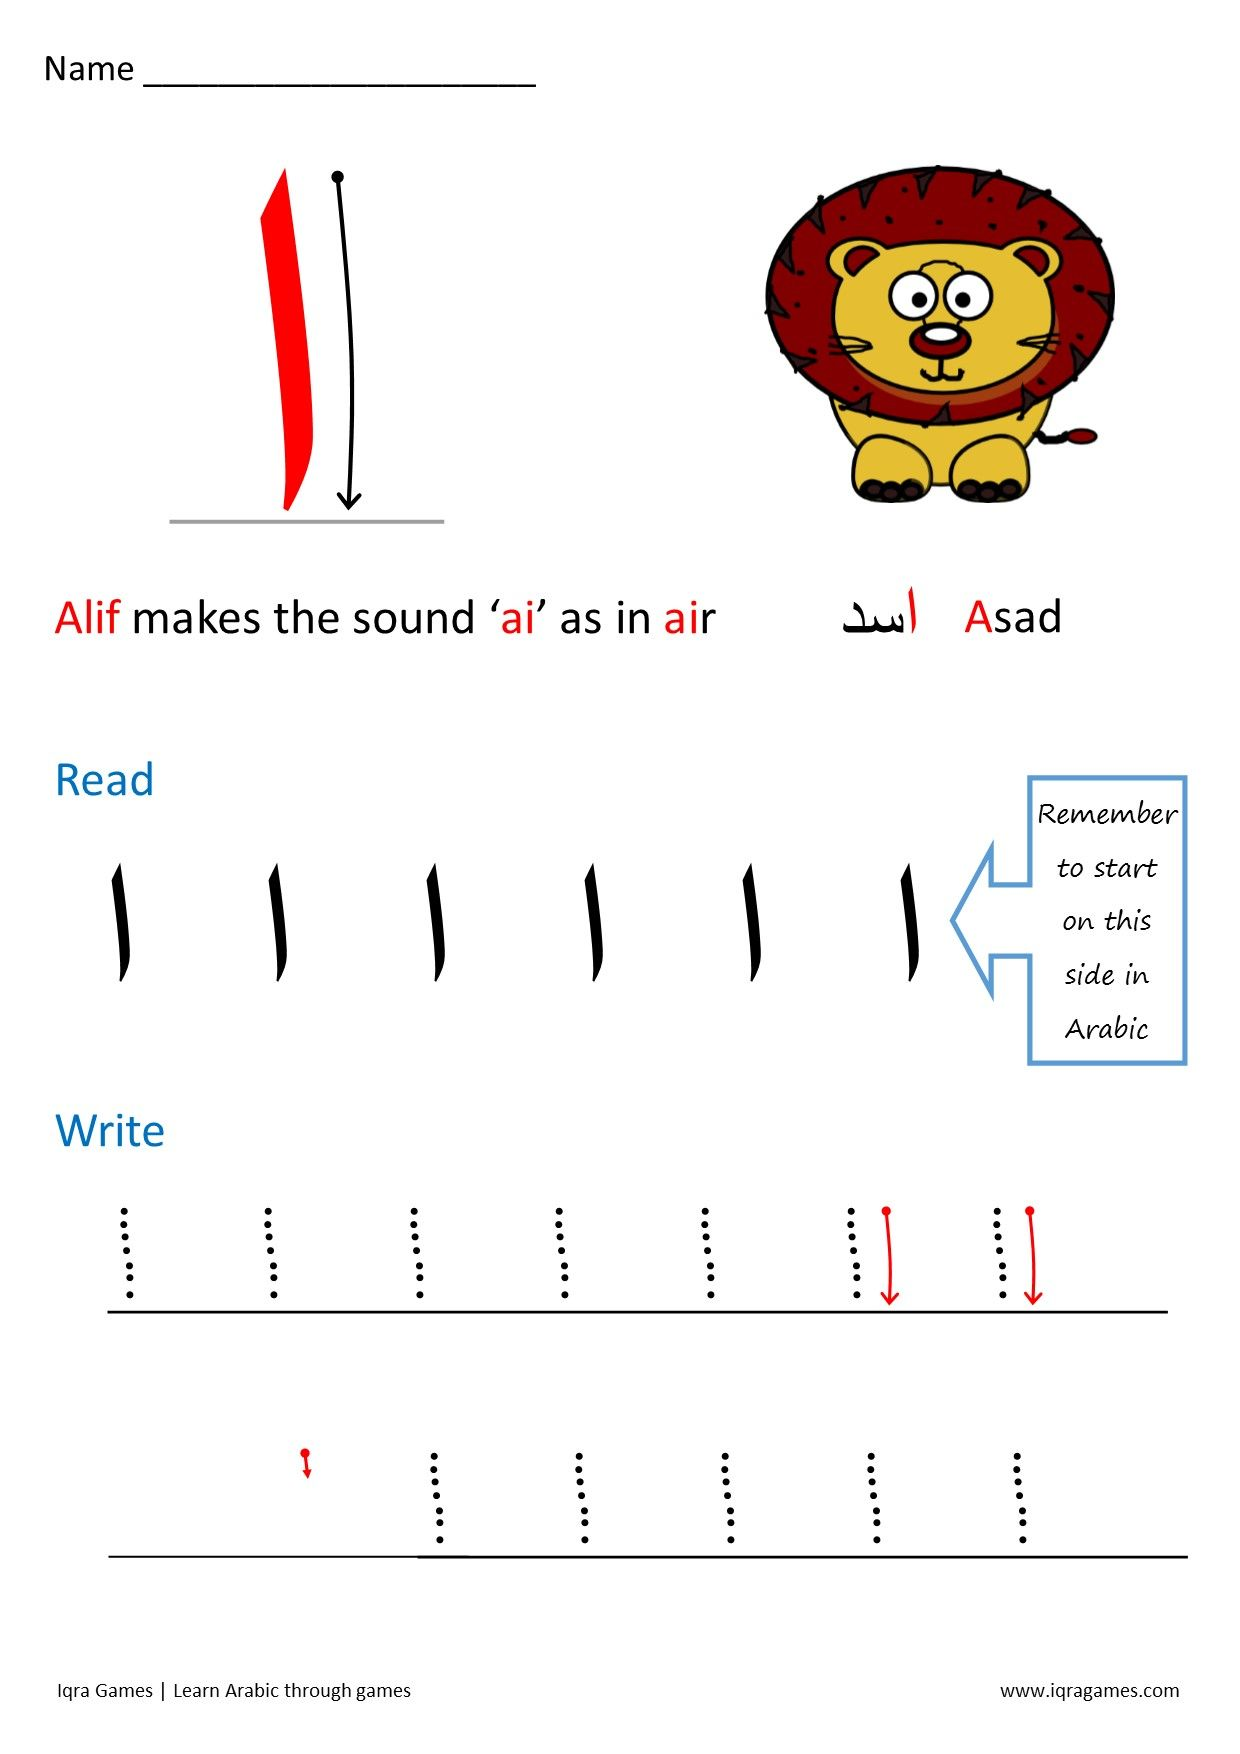 Arabic Alphabet Alif Children Kids With Images